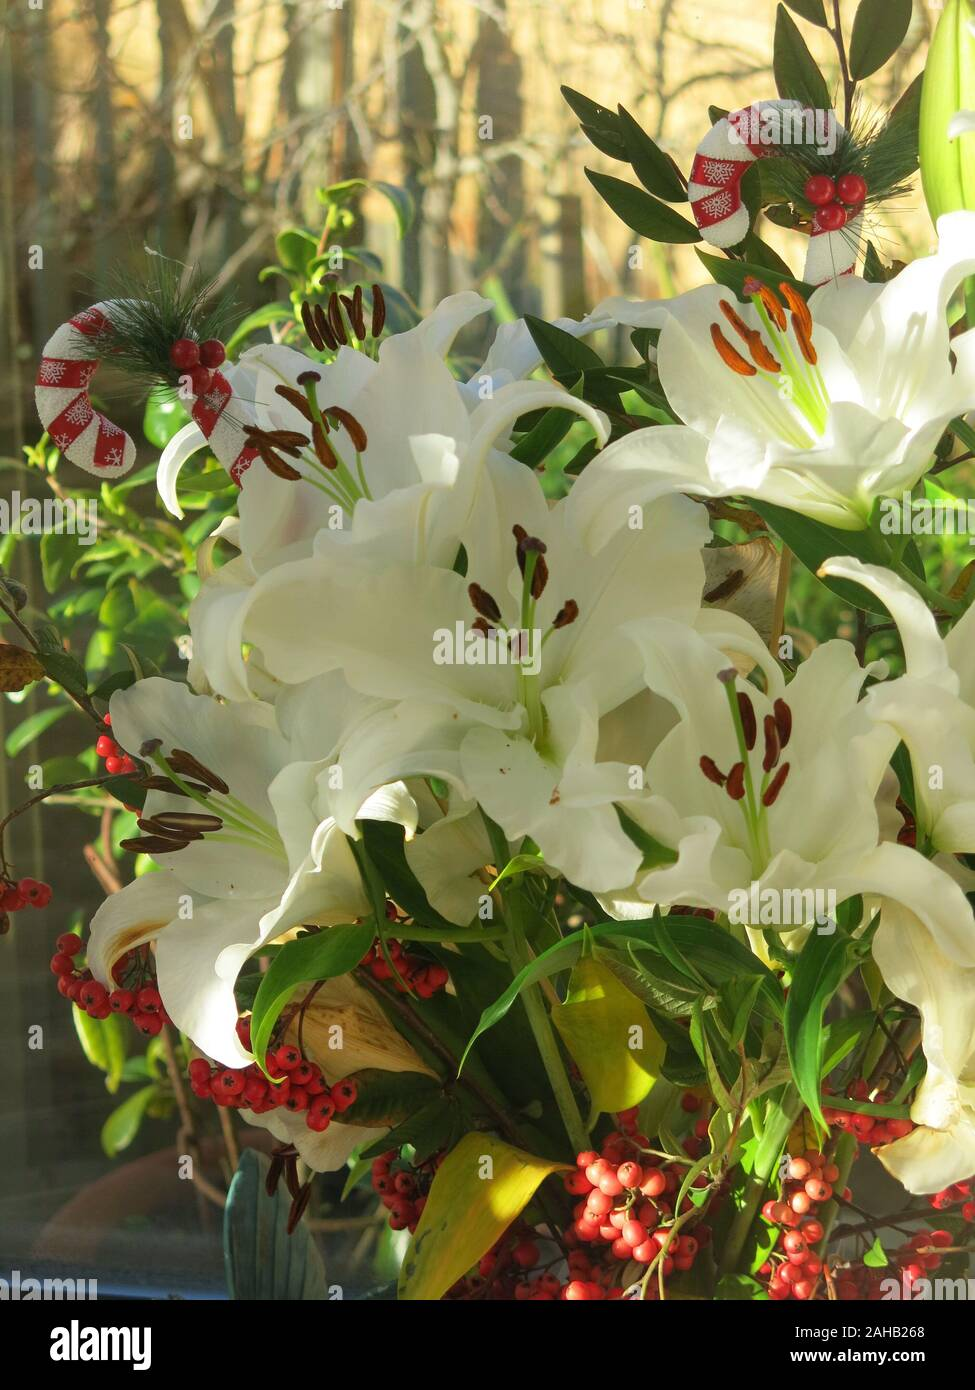 A Festive Floral Arrangement For A Windowsill At Christmas White Lilies Red Berries And Decorated Candy Canes Stock Photo Alamy